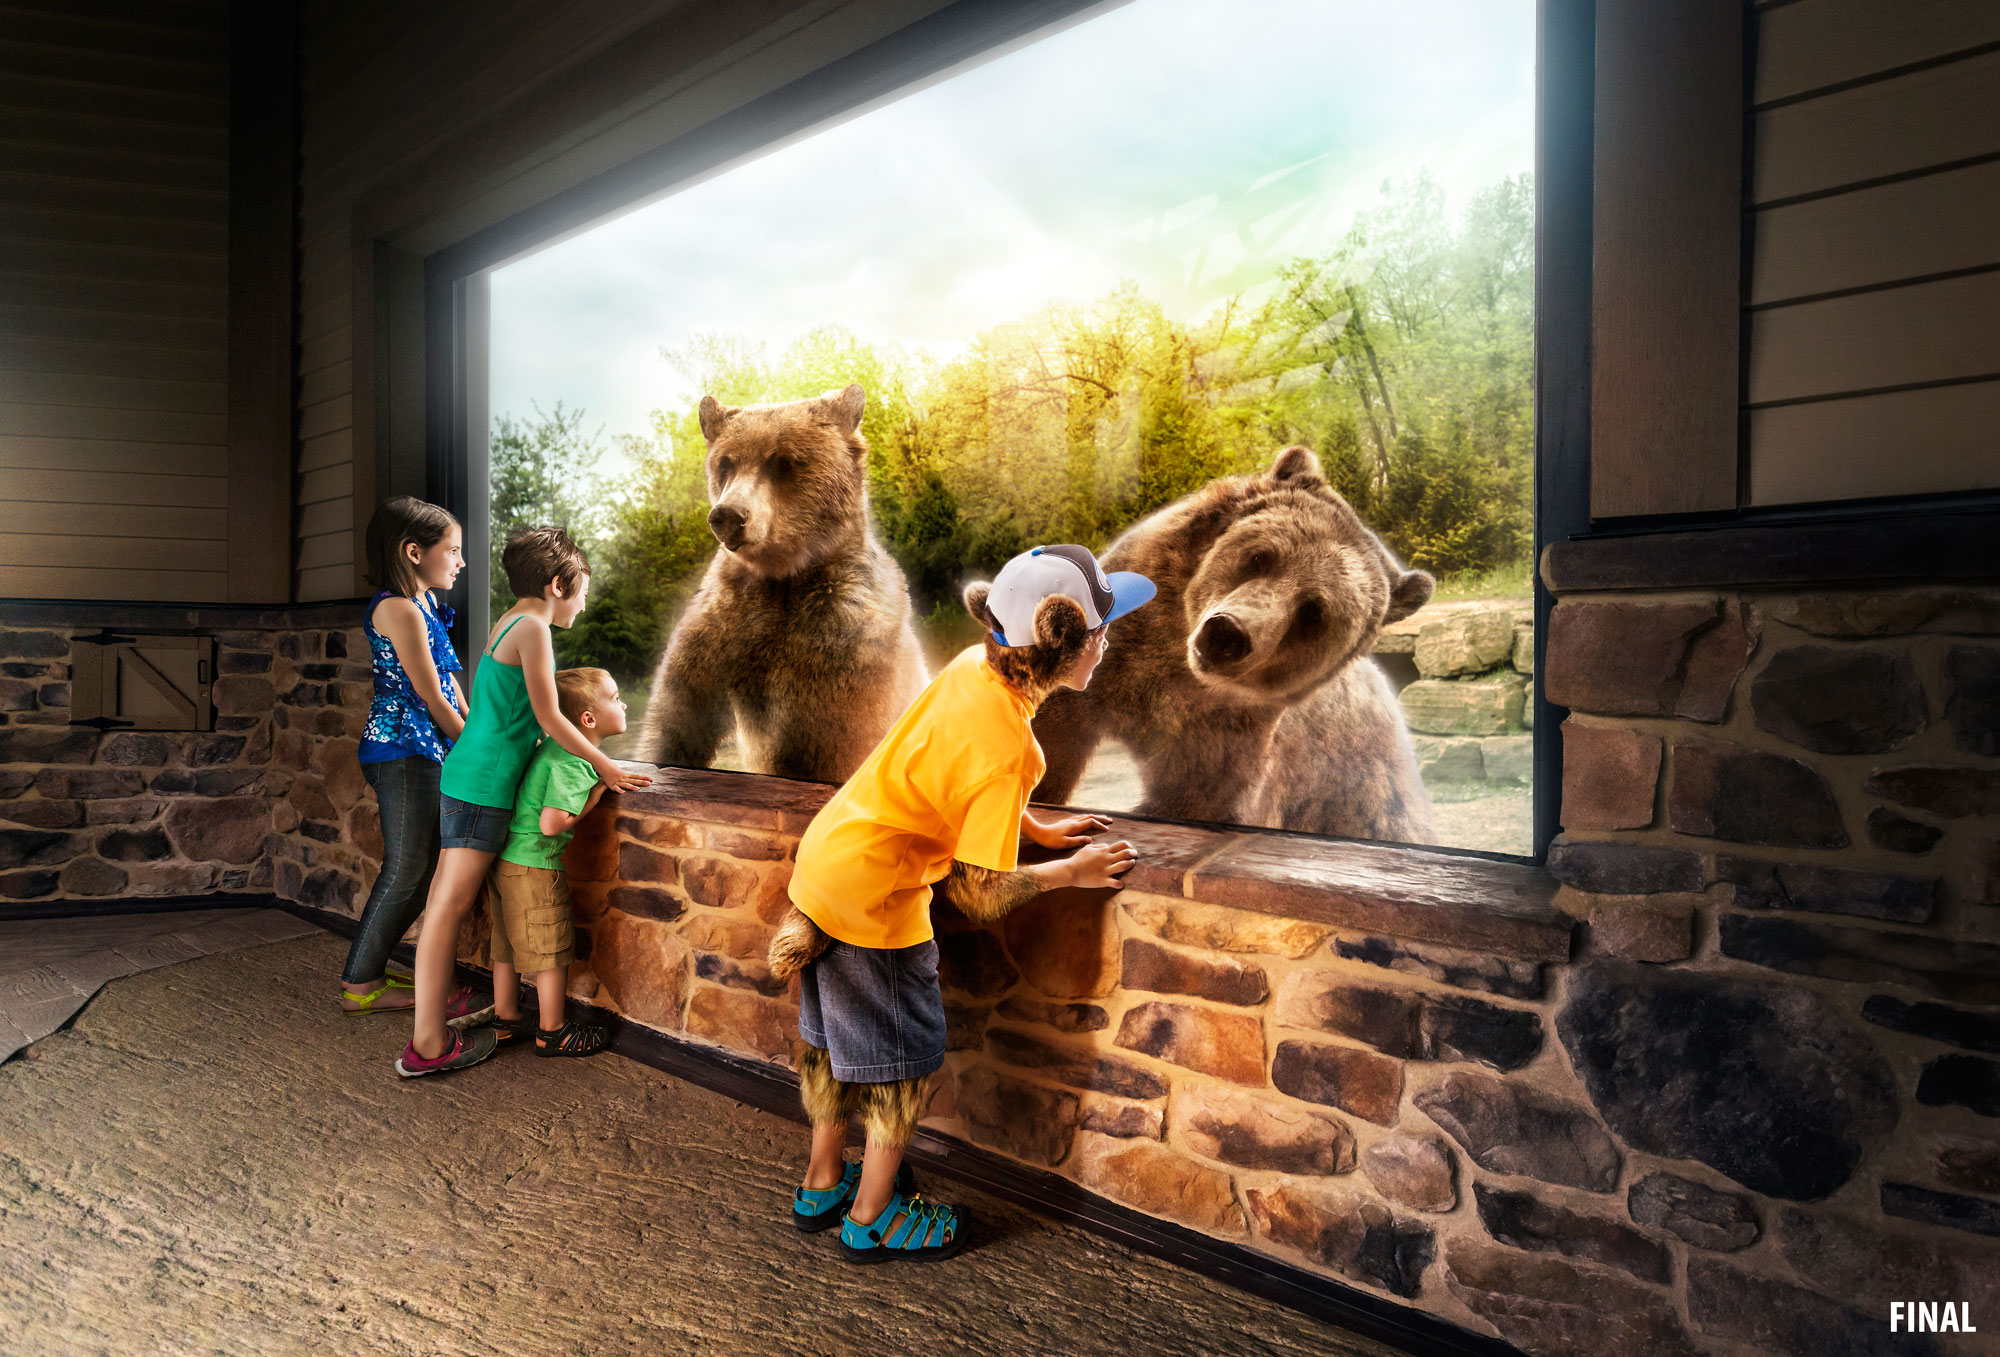 professional composite image of kids at the zoo looking at bears